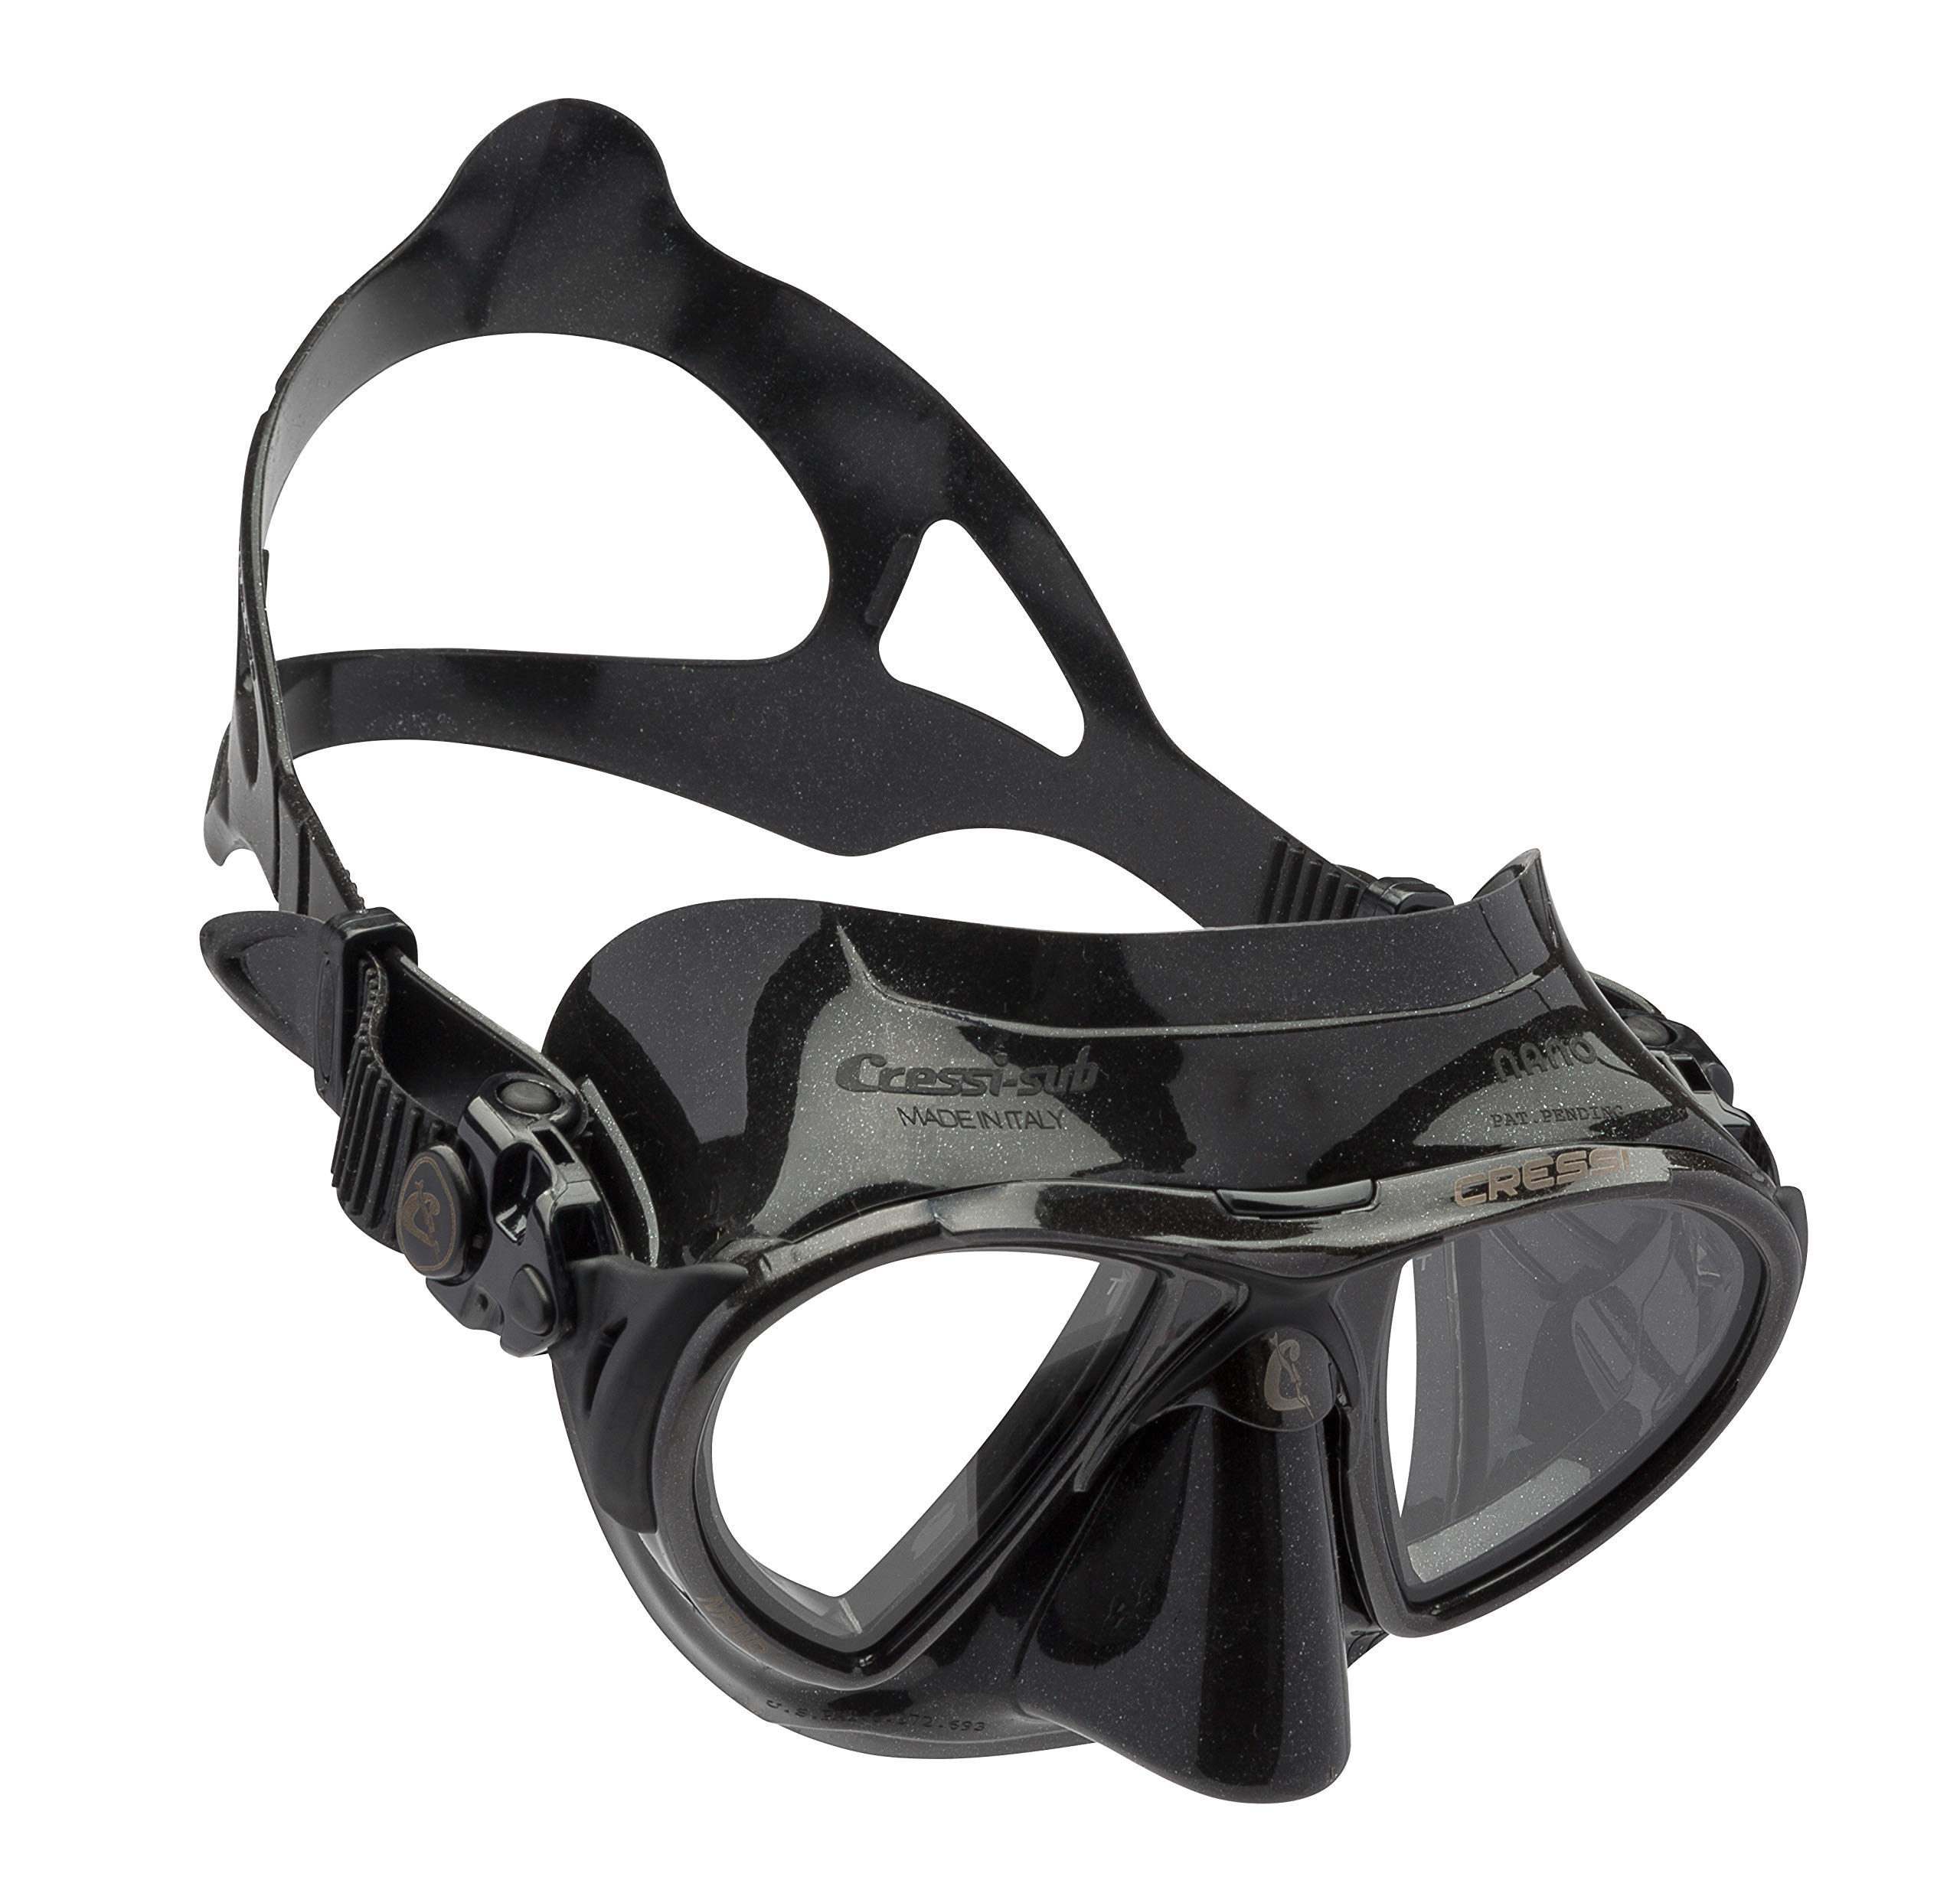 Cressi NANO Expert Adult Compact Mask for Freediving & Scuba Diving, All Black by Cressi